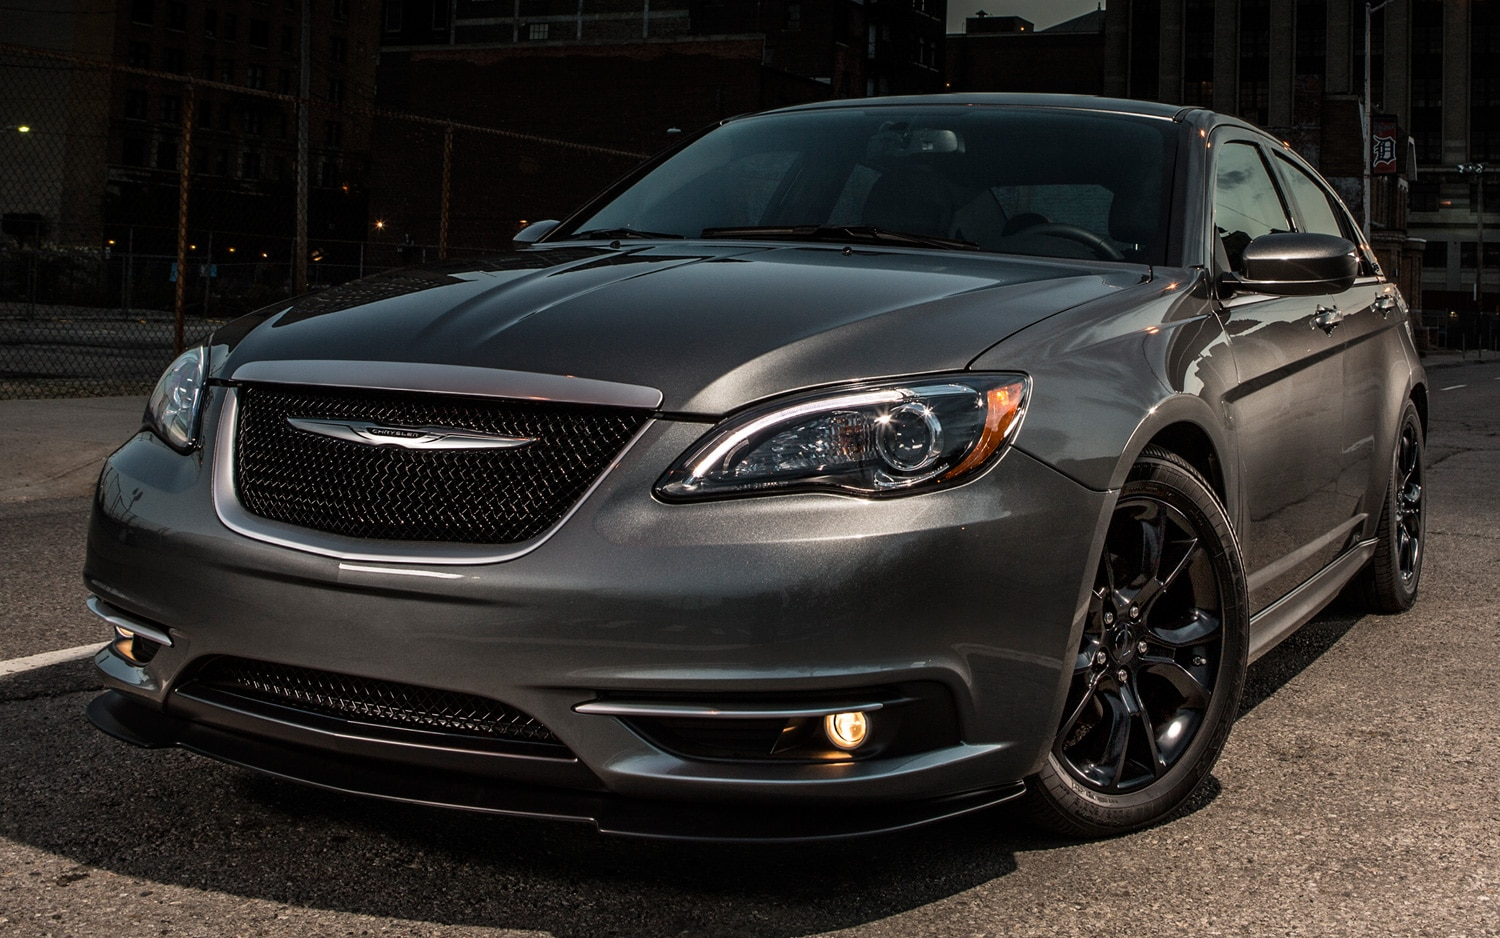 2013 Chrysler 200 S Special Edition Front Three Quarters View1